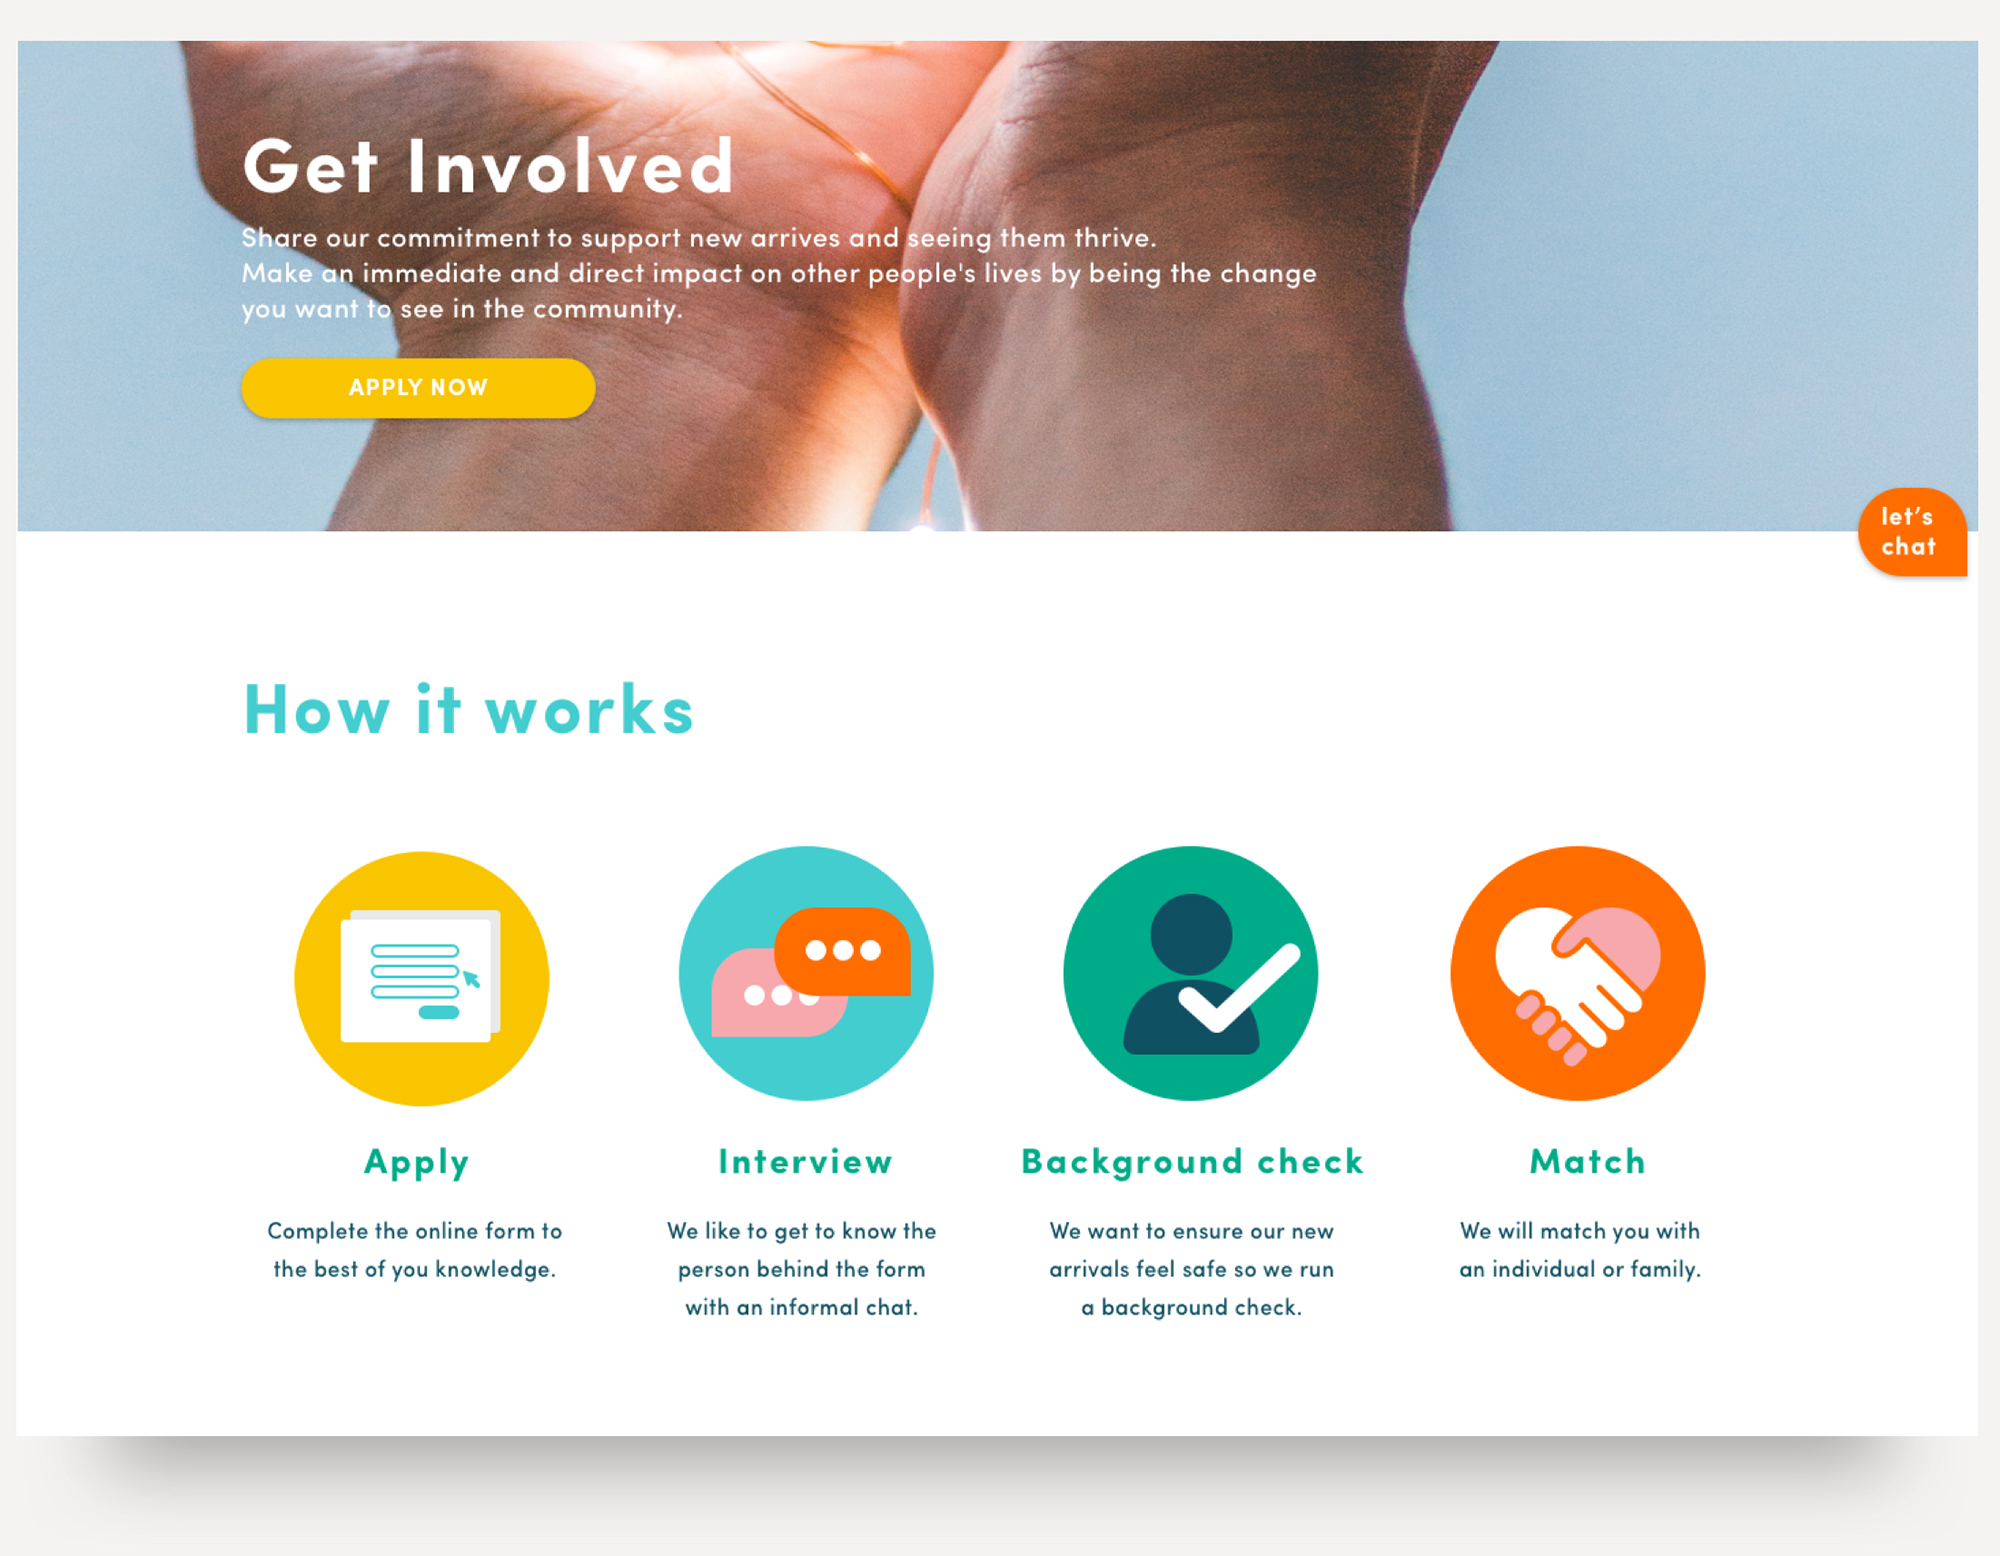 Volunteer page with the use of icons to explains how to get involved.